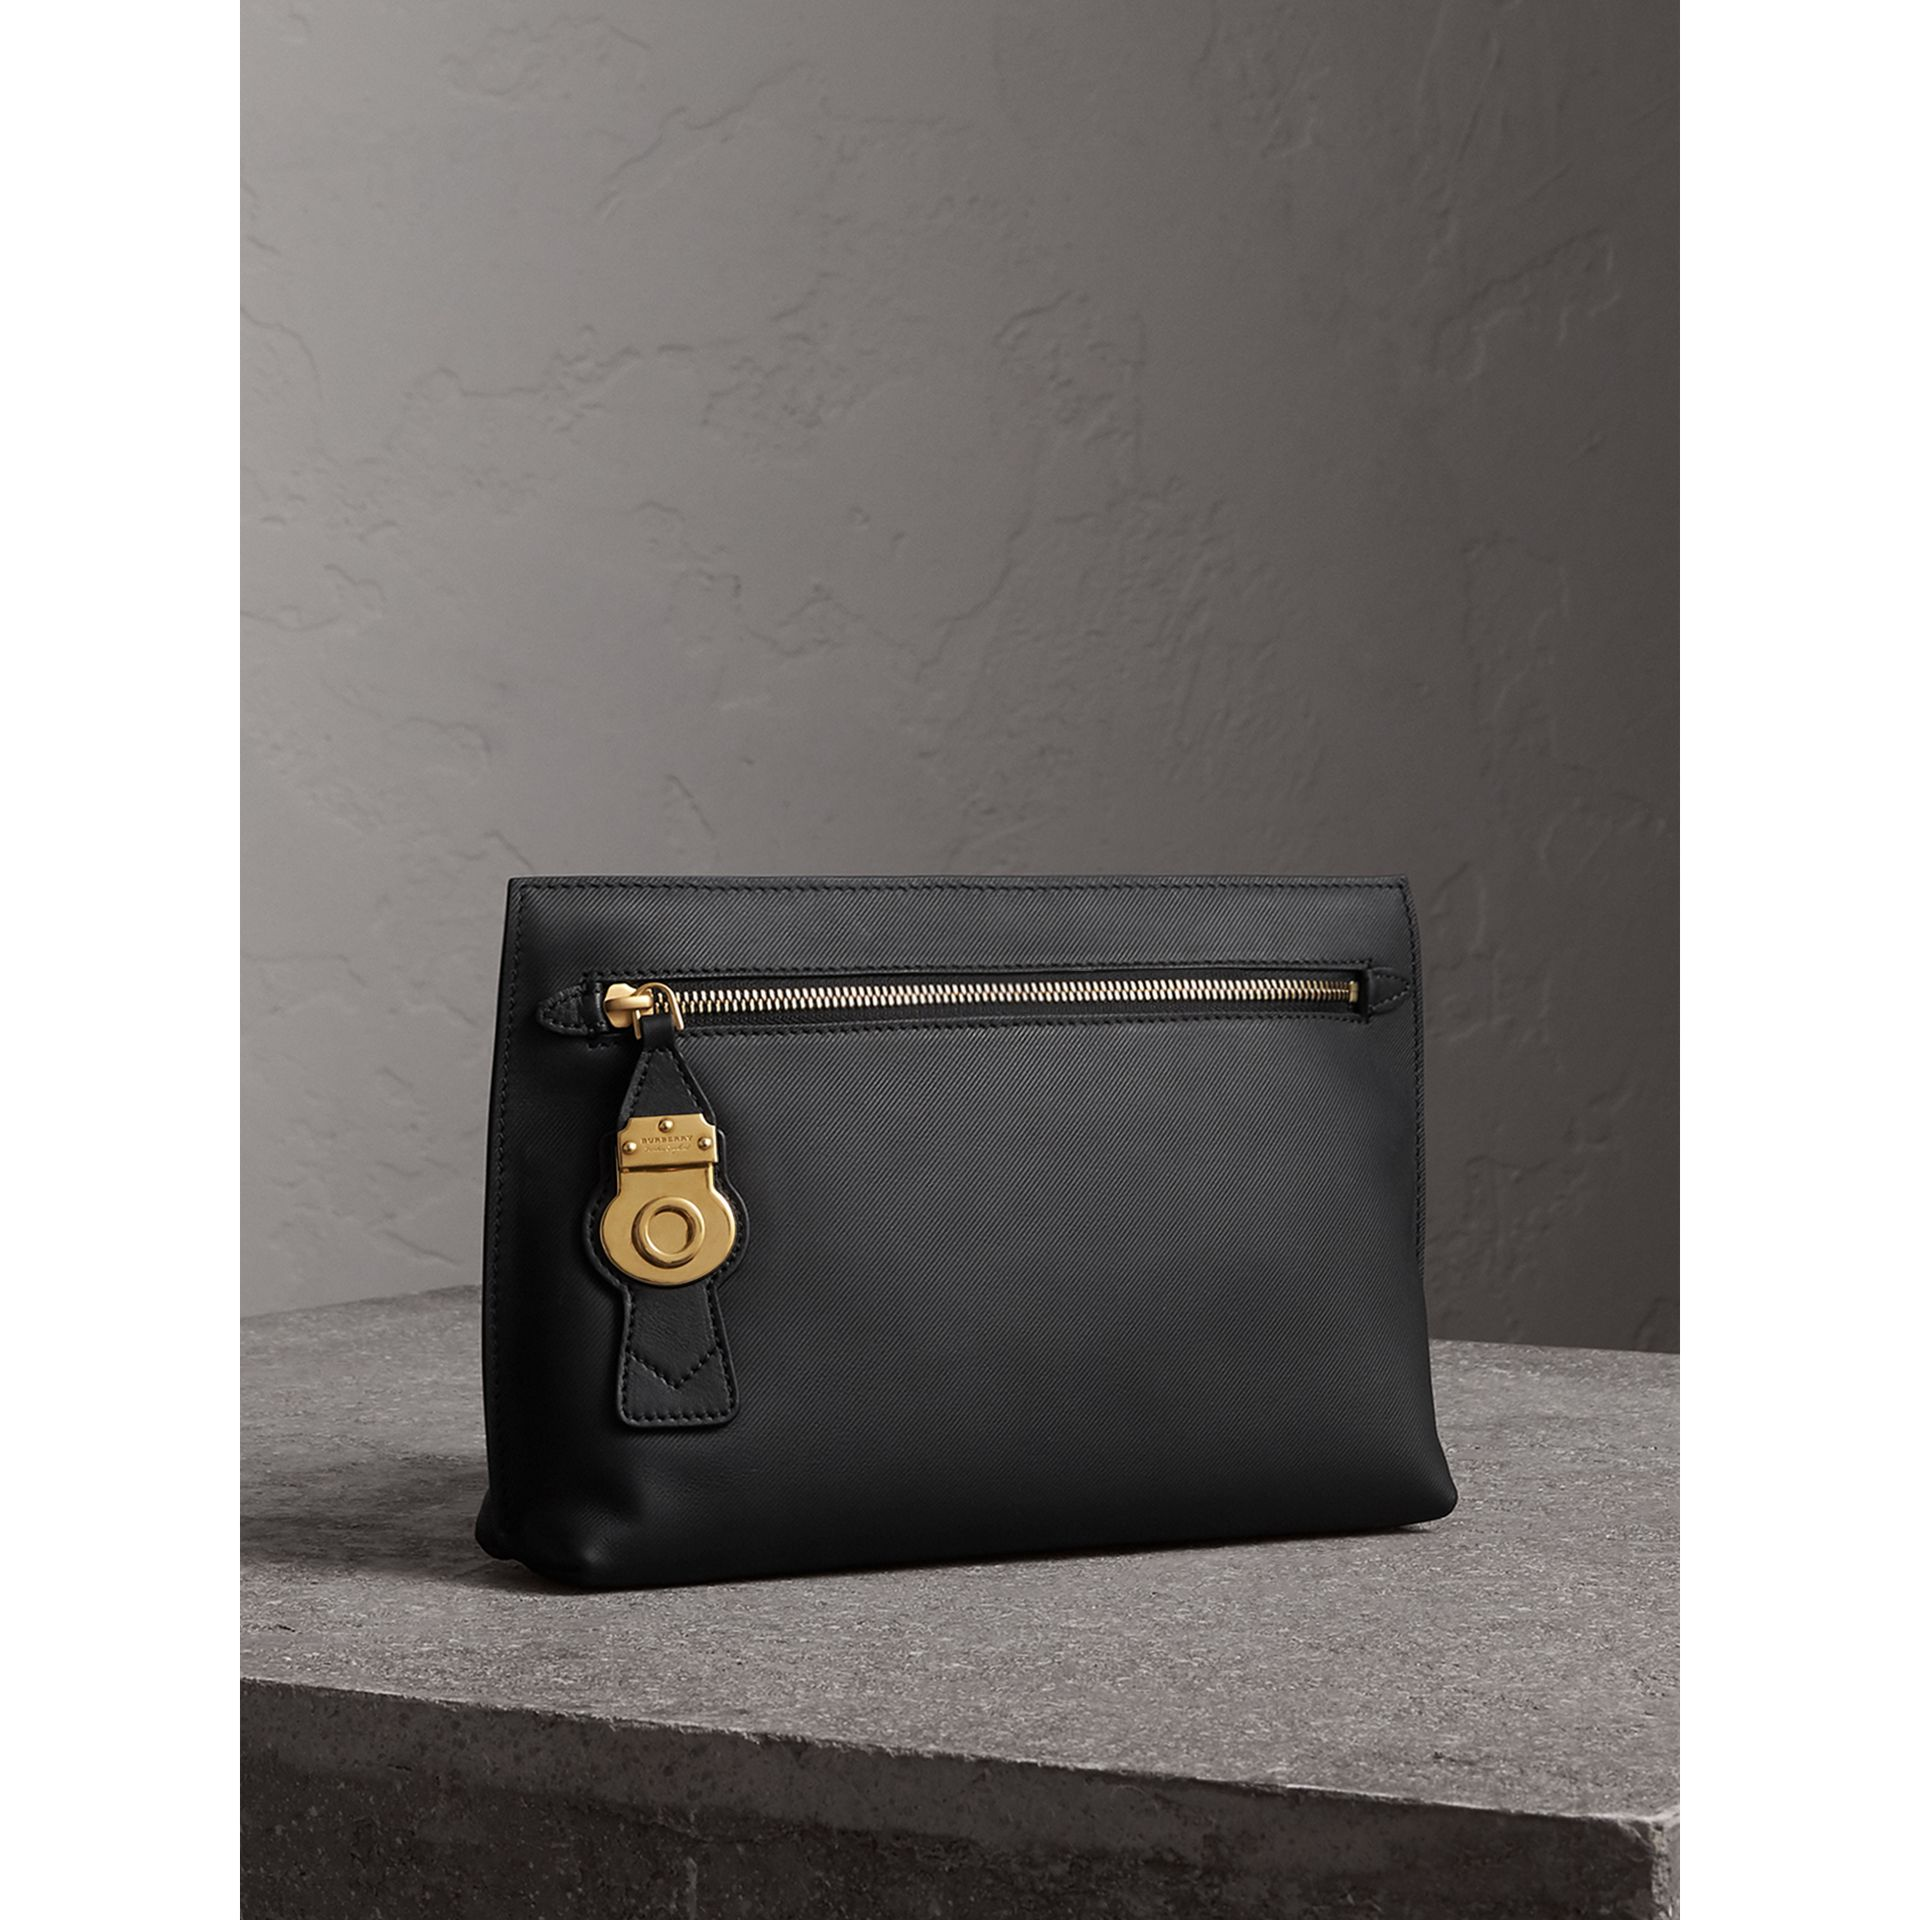 Trench Leather Wristlet Pouch in Black - Women | Burberry - gallery image 5